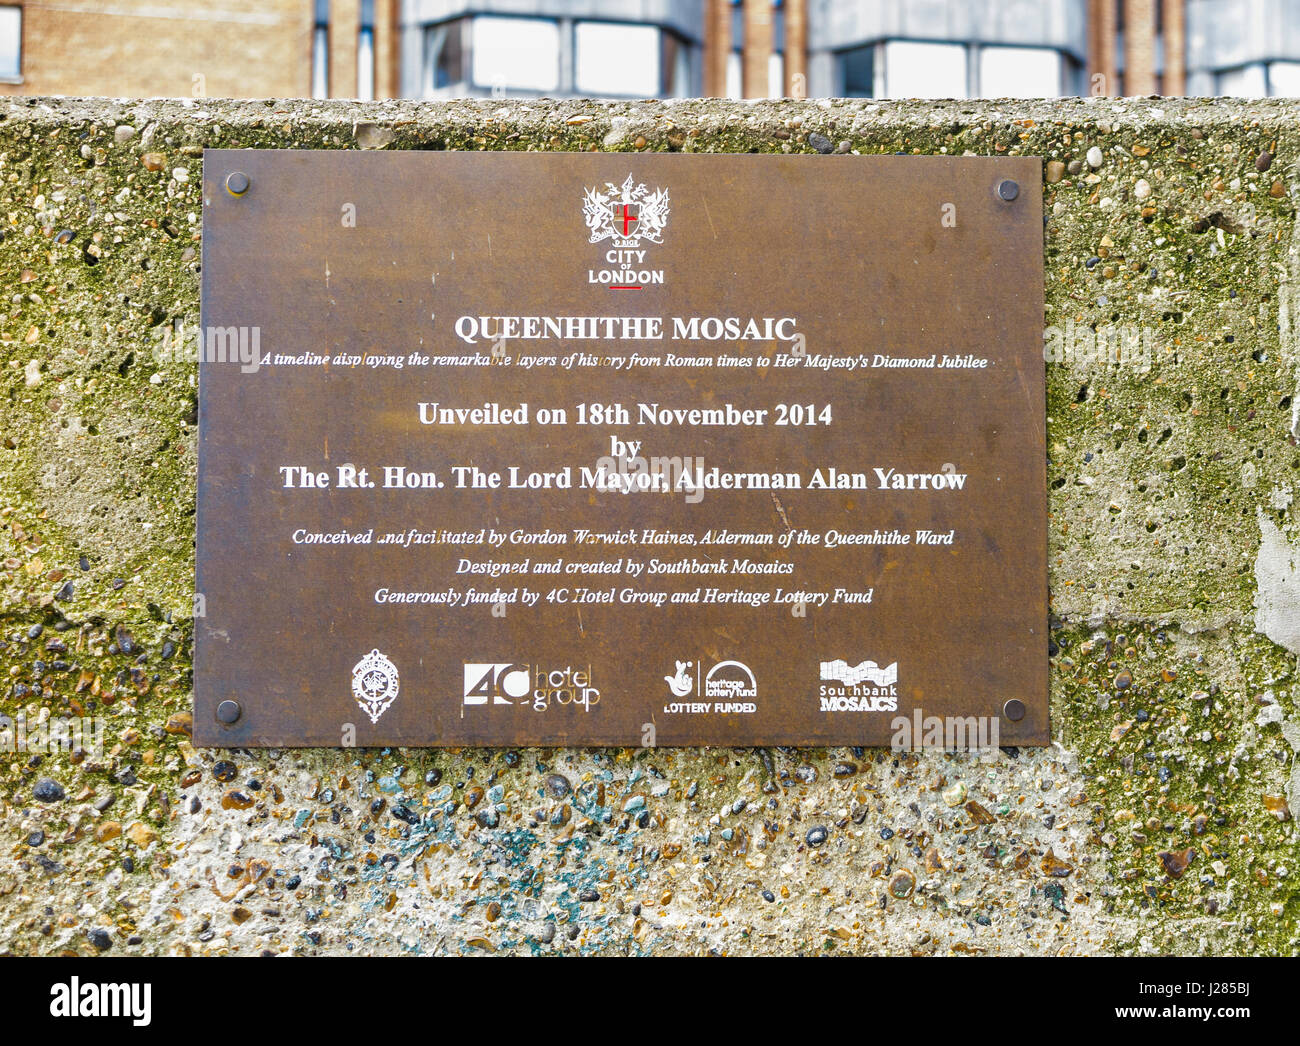 Plaque describing and giving details of the Queenhithe Mosaic on Riverside Walk, London EC4, commemorating events - Stock Image